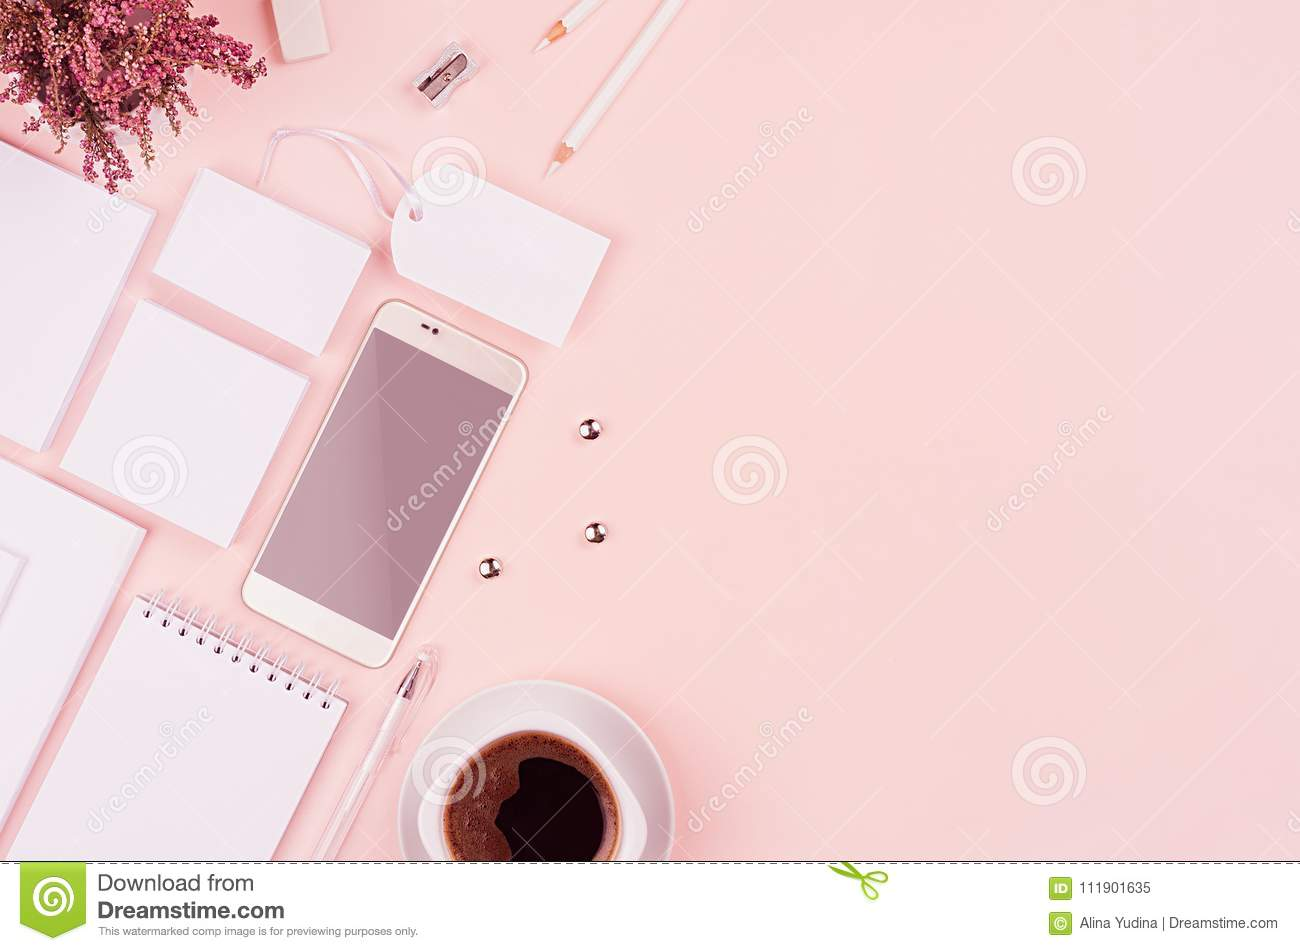 Corporate identity template with white stationery set, heather flowers, coffee, phone on soft pastel pink background.